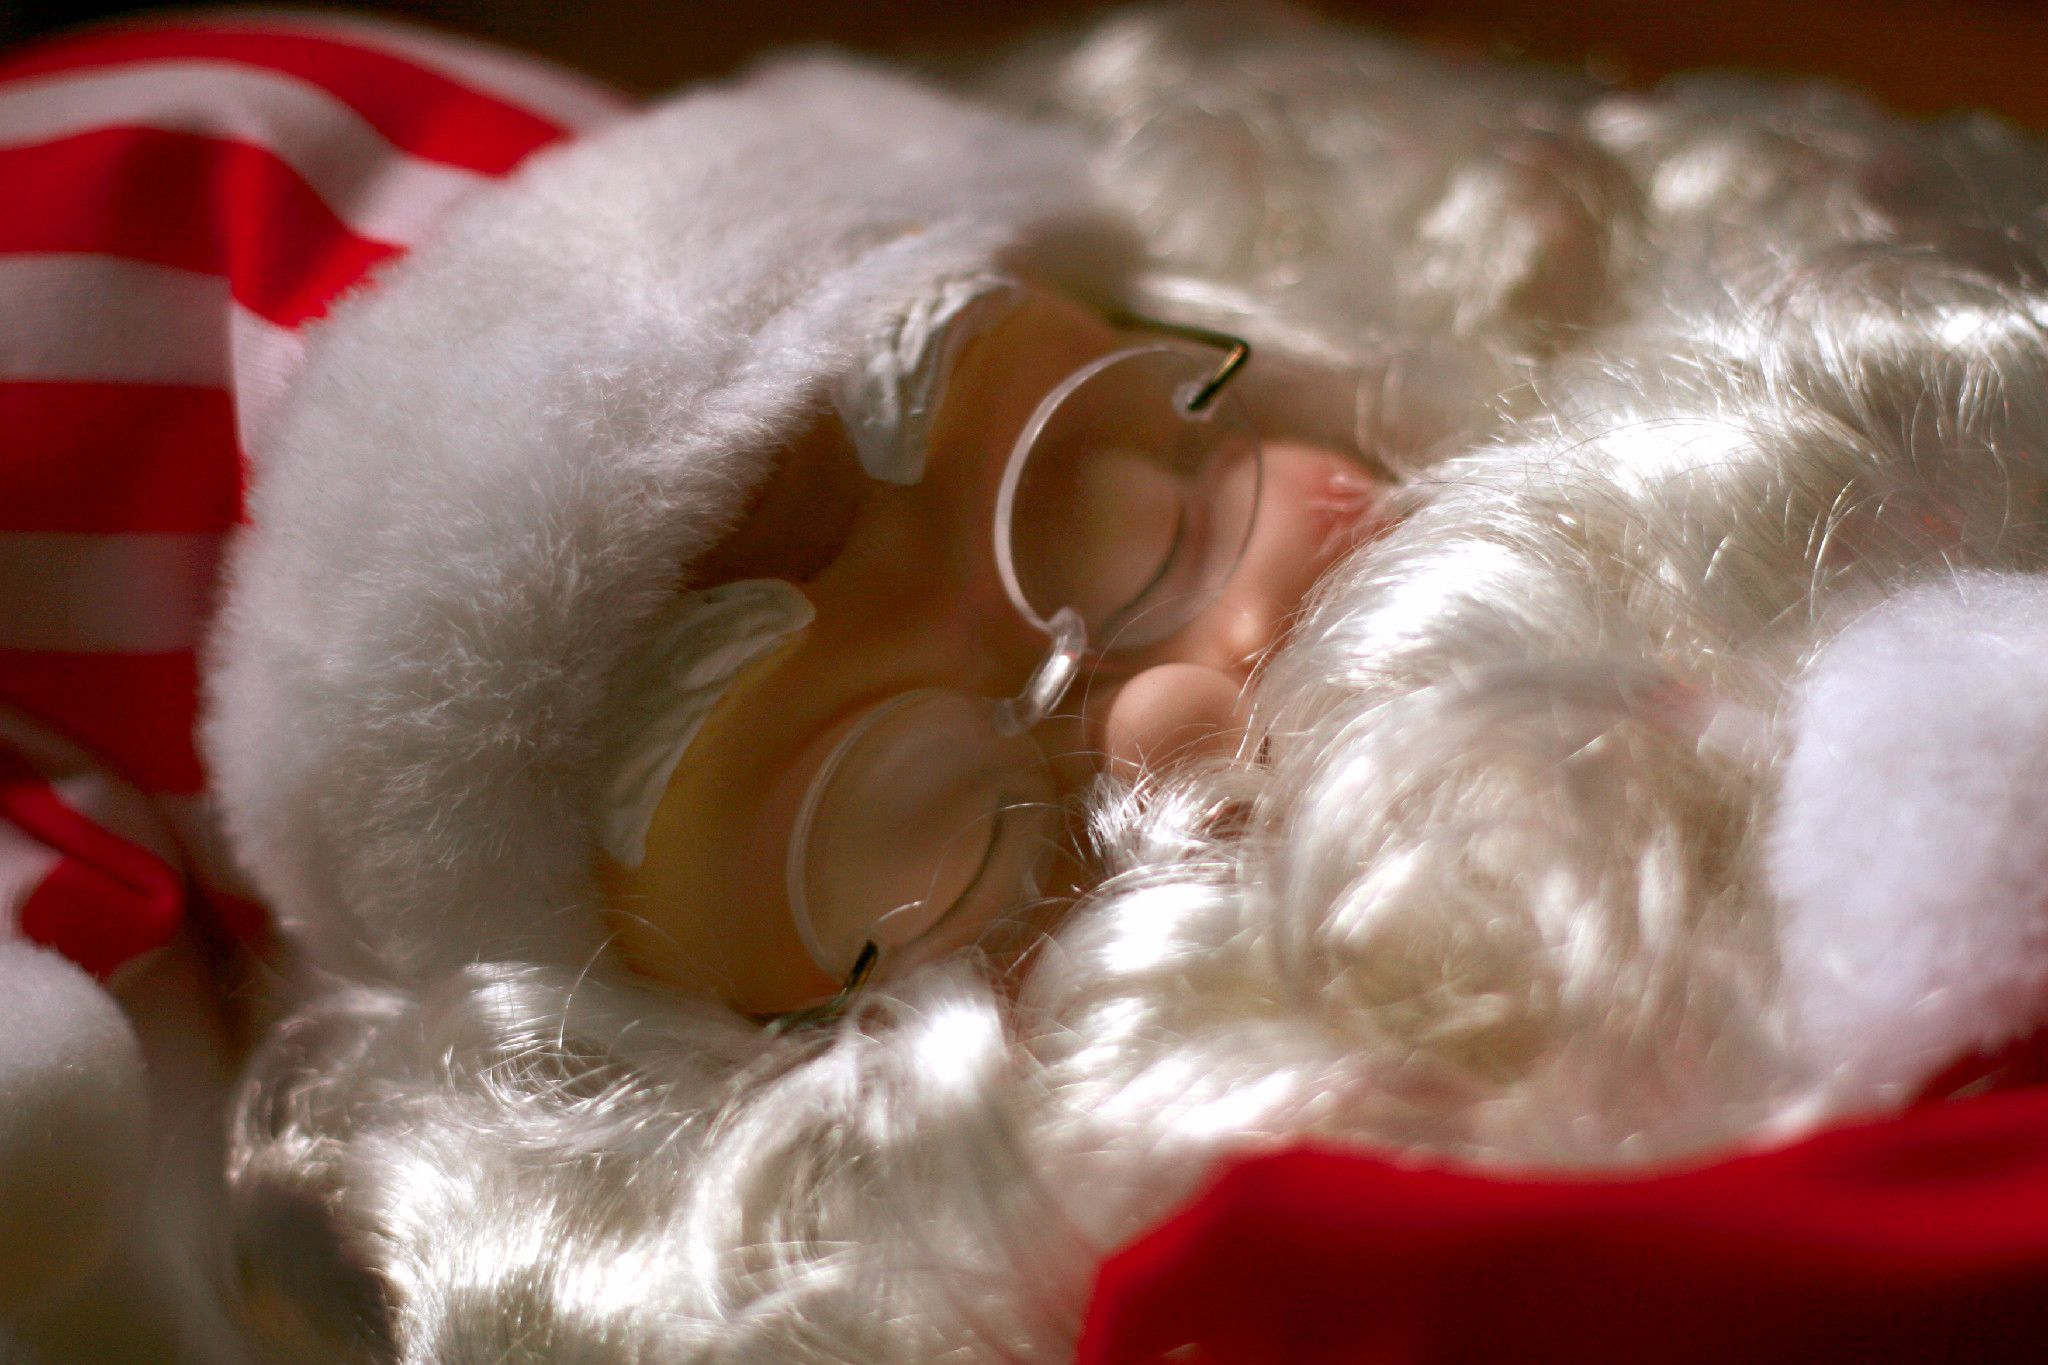 Santa is catching some extra sleep for his long journey this year.  It is almost time to unpack this cute Motionette.